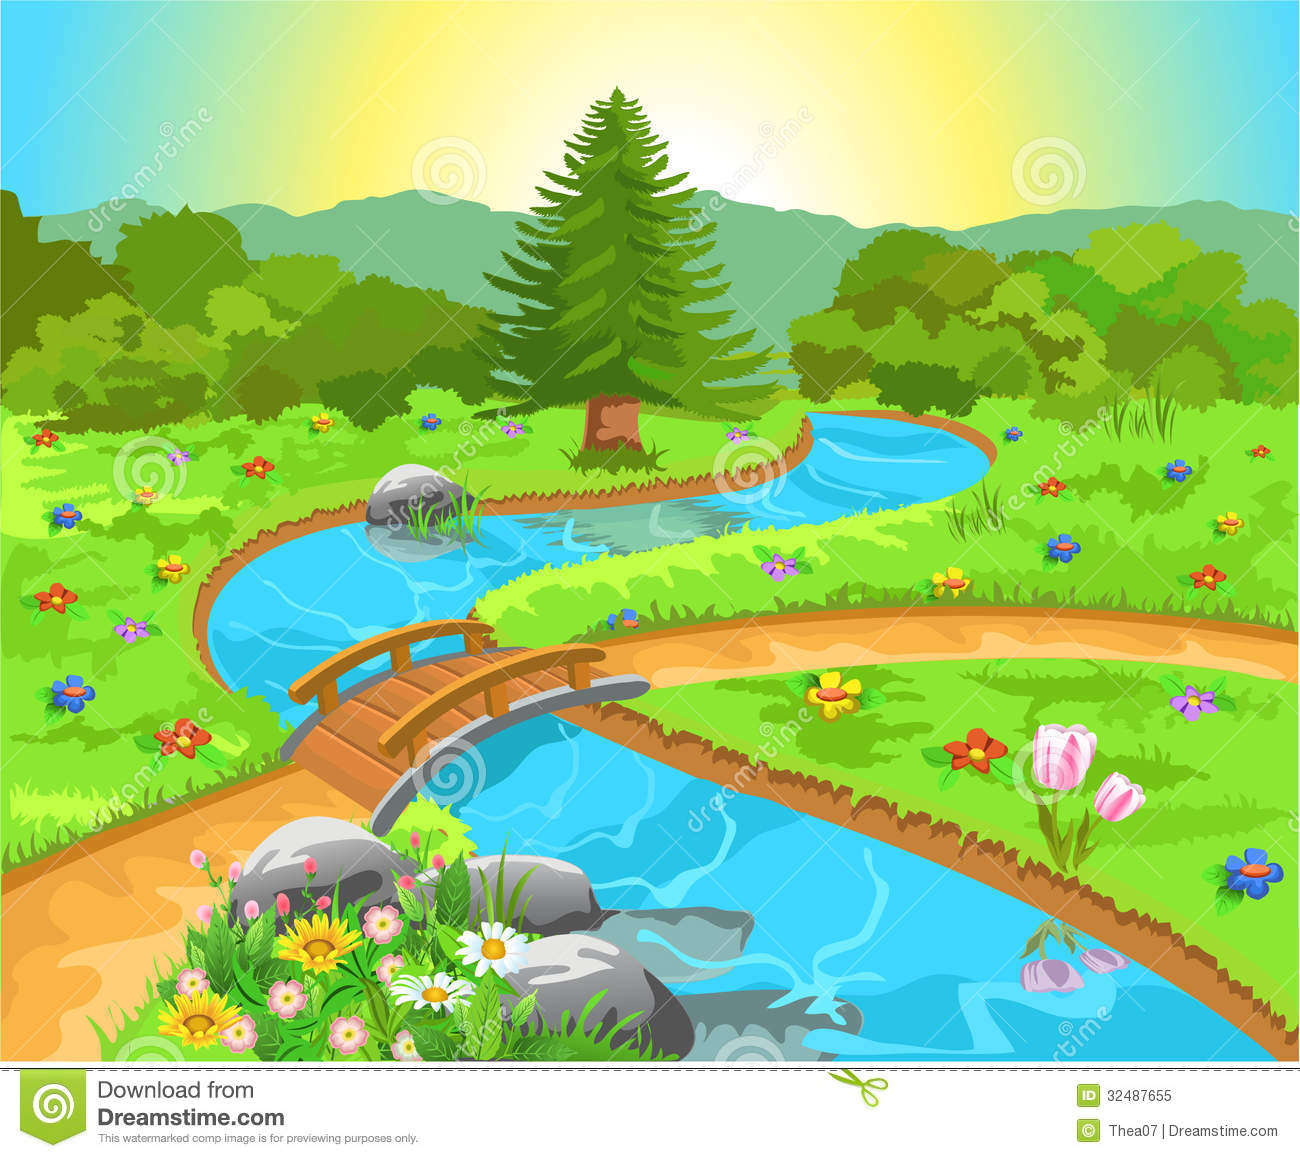 Nature Clipart Images Nature landscape with water